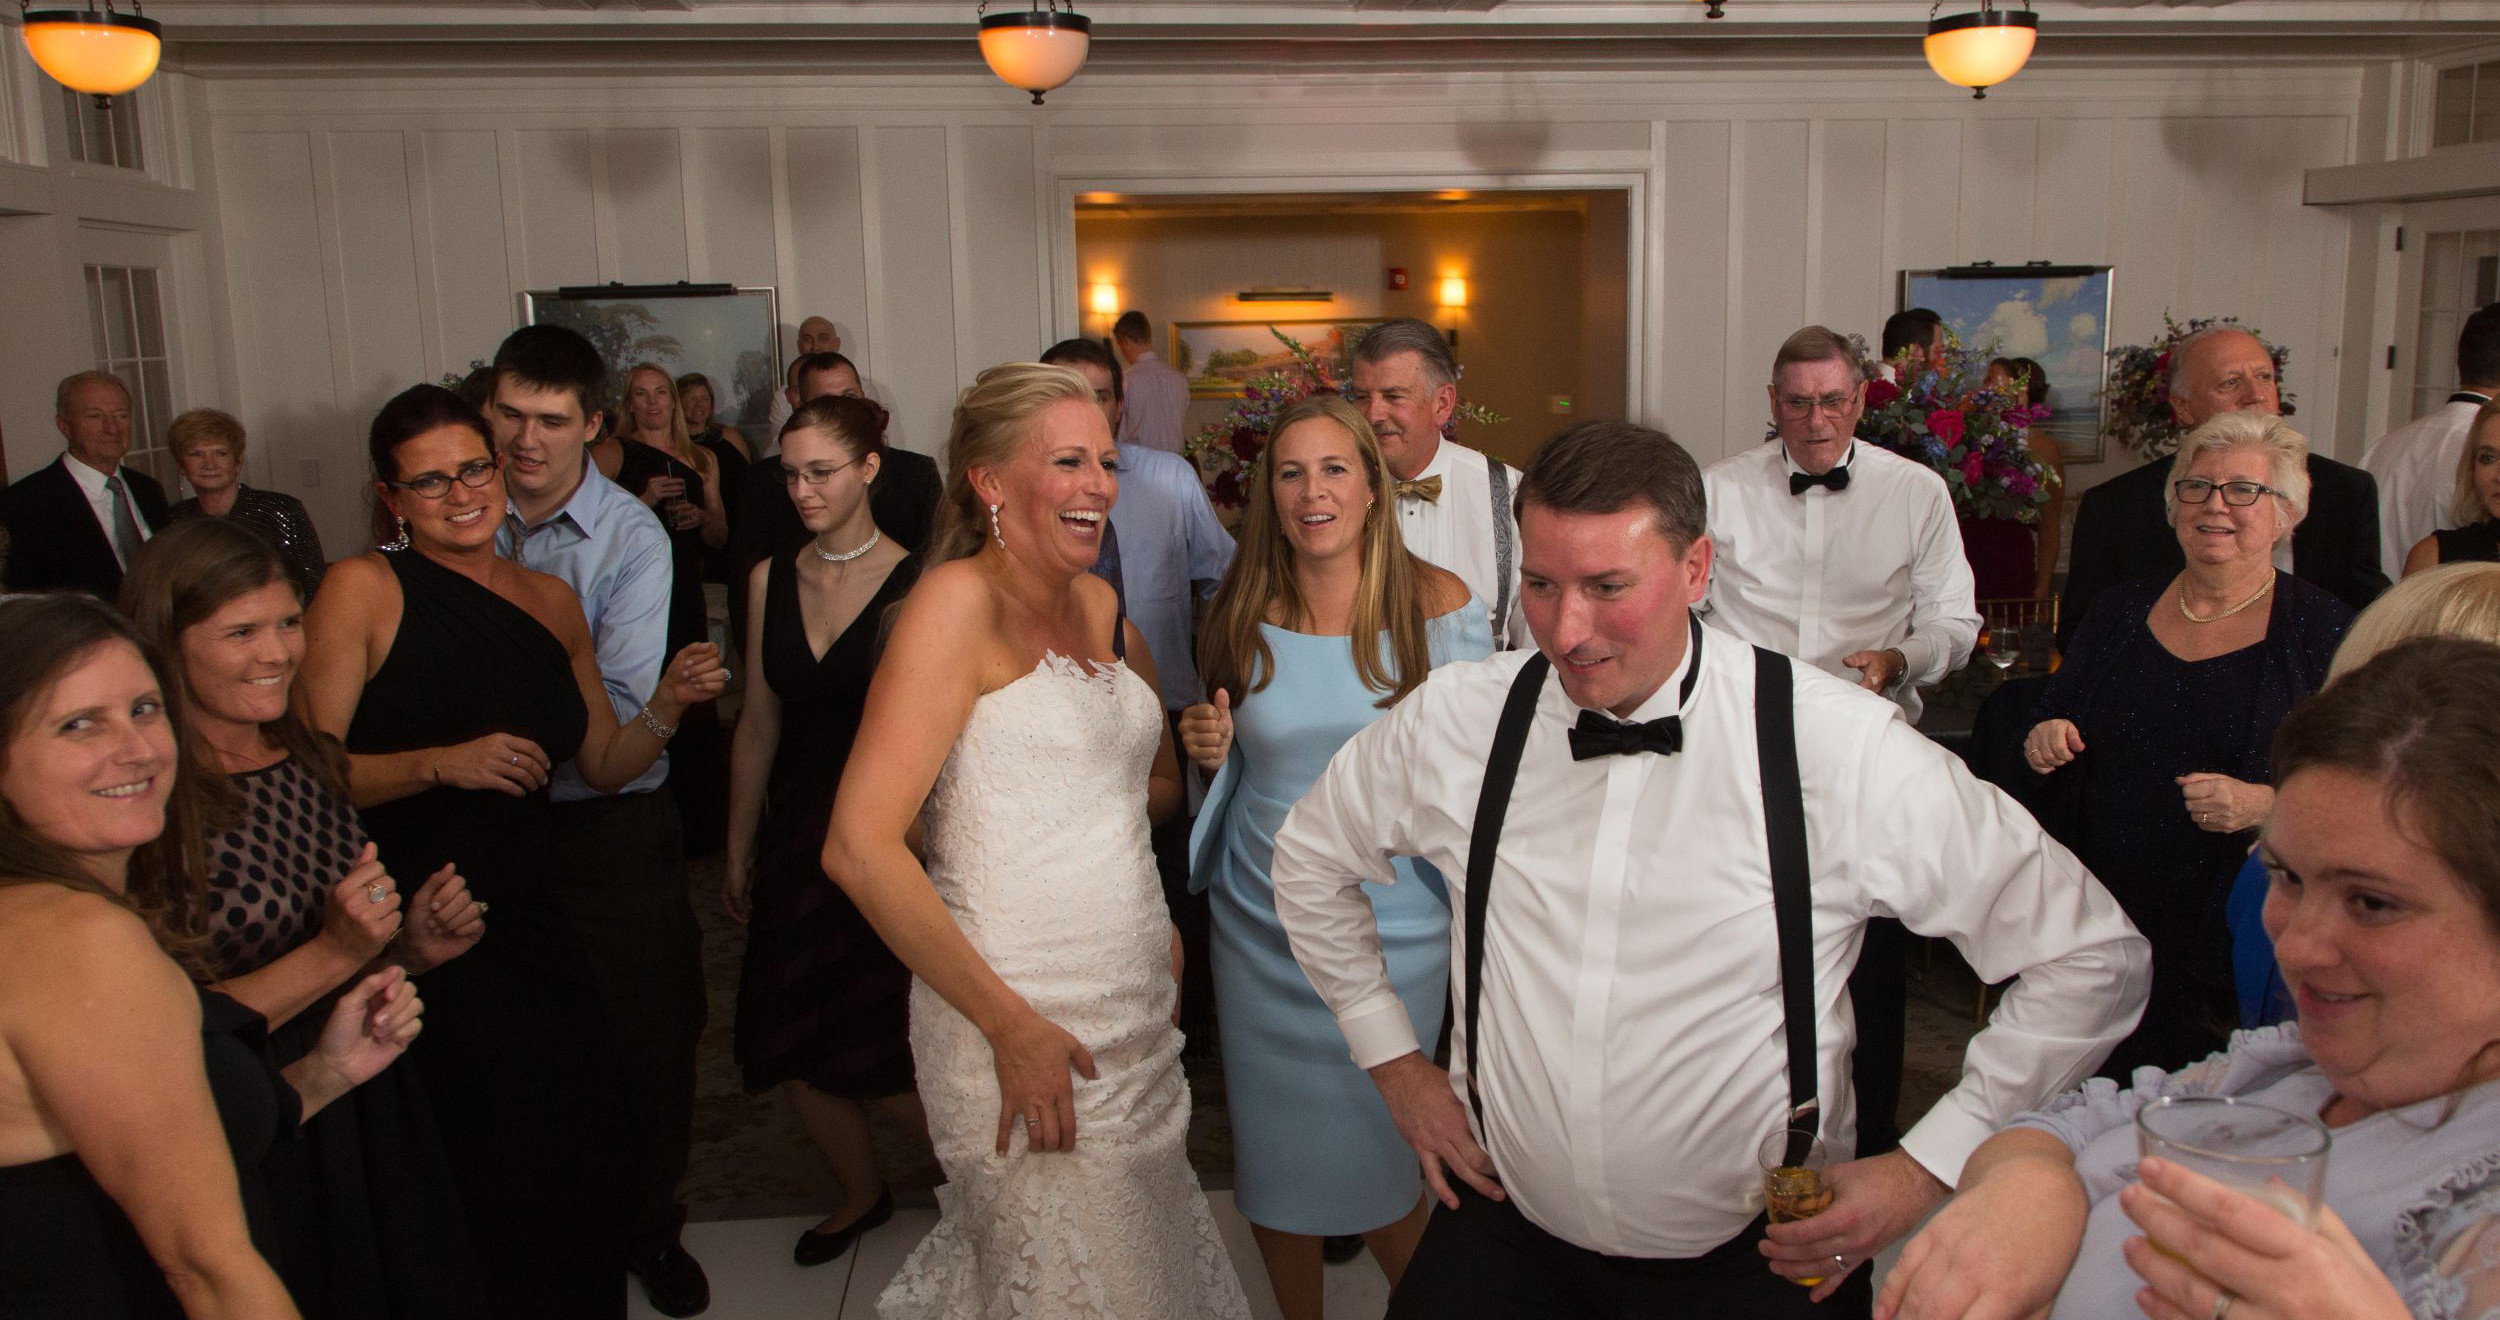 groom dances with hands on hips with bride and guests watching